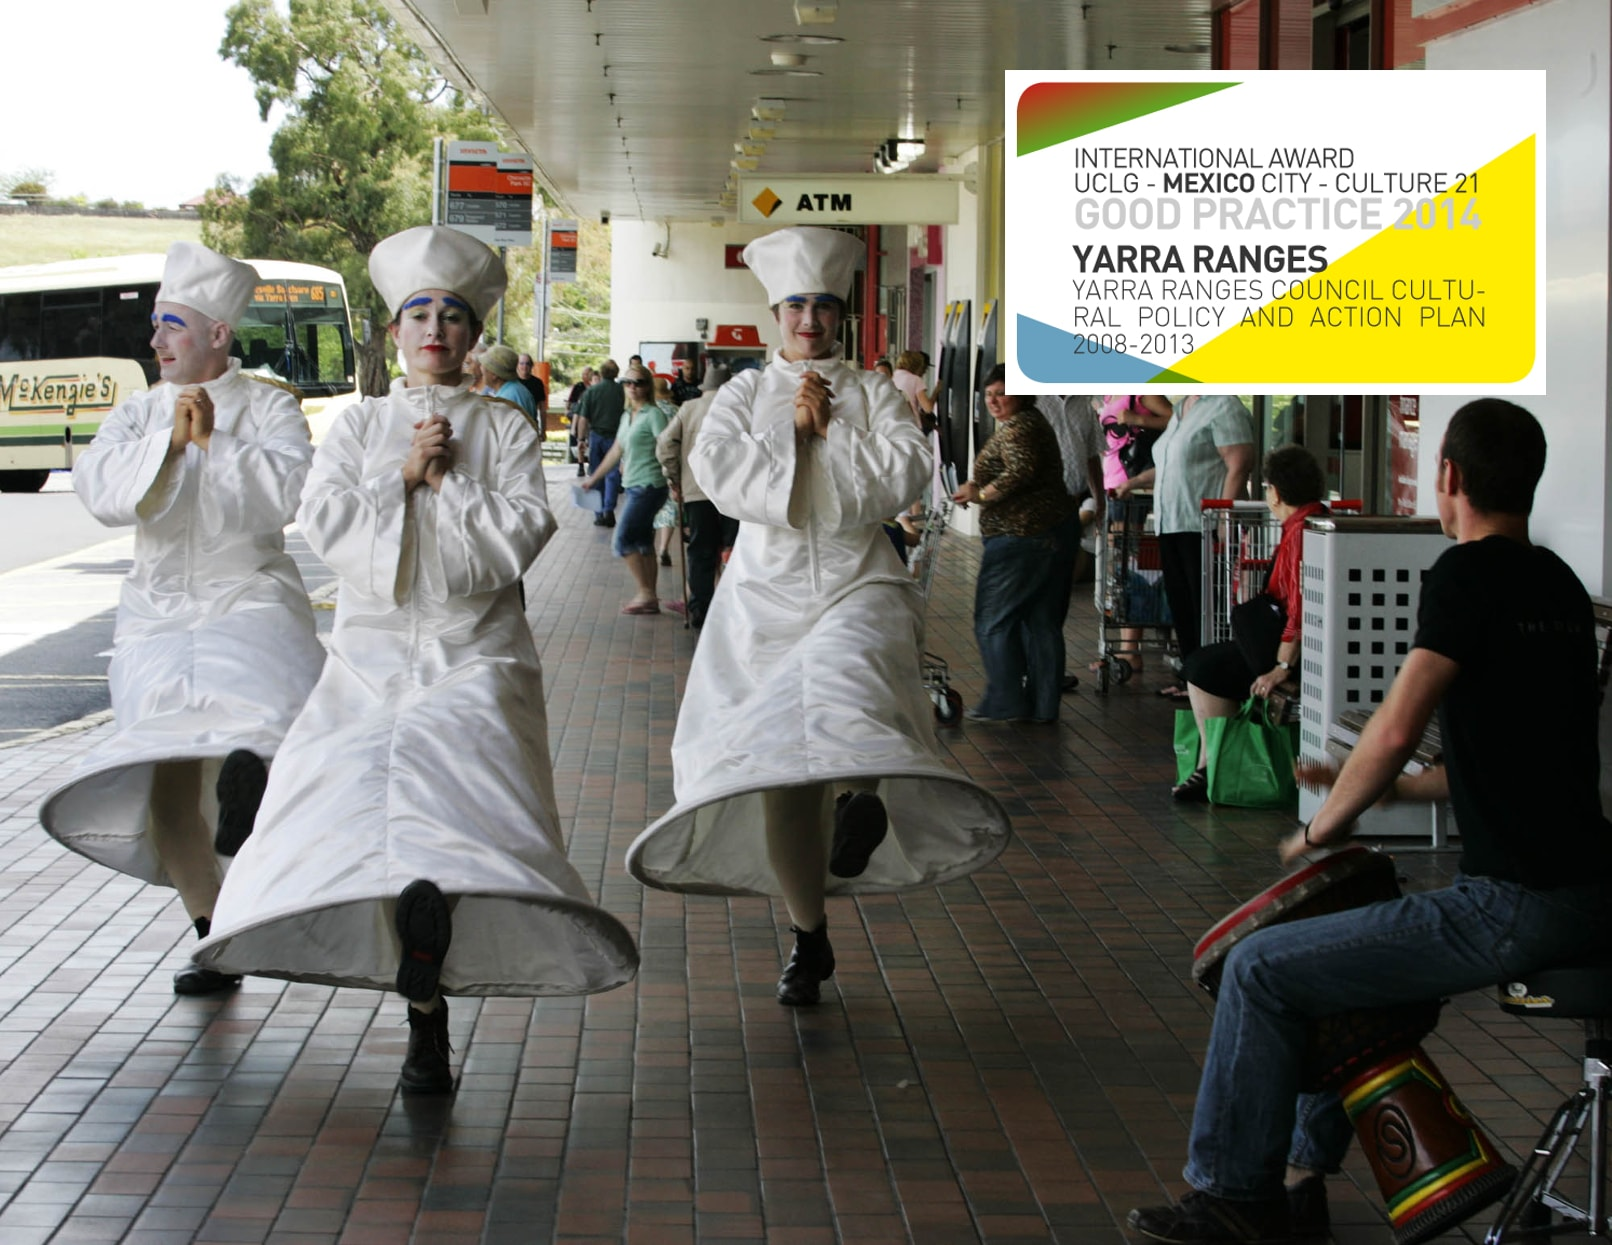 Yarra Ranges council cultural policy and action plan 2008-2013